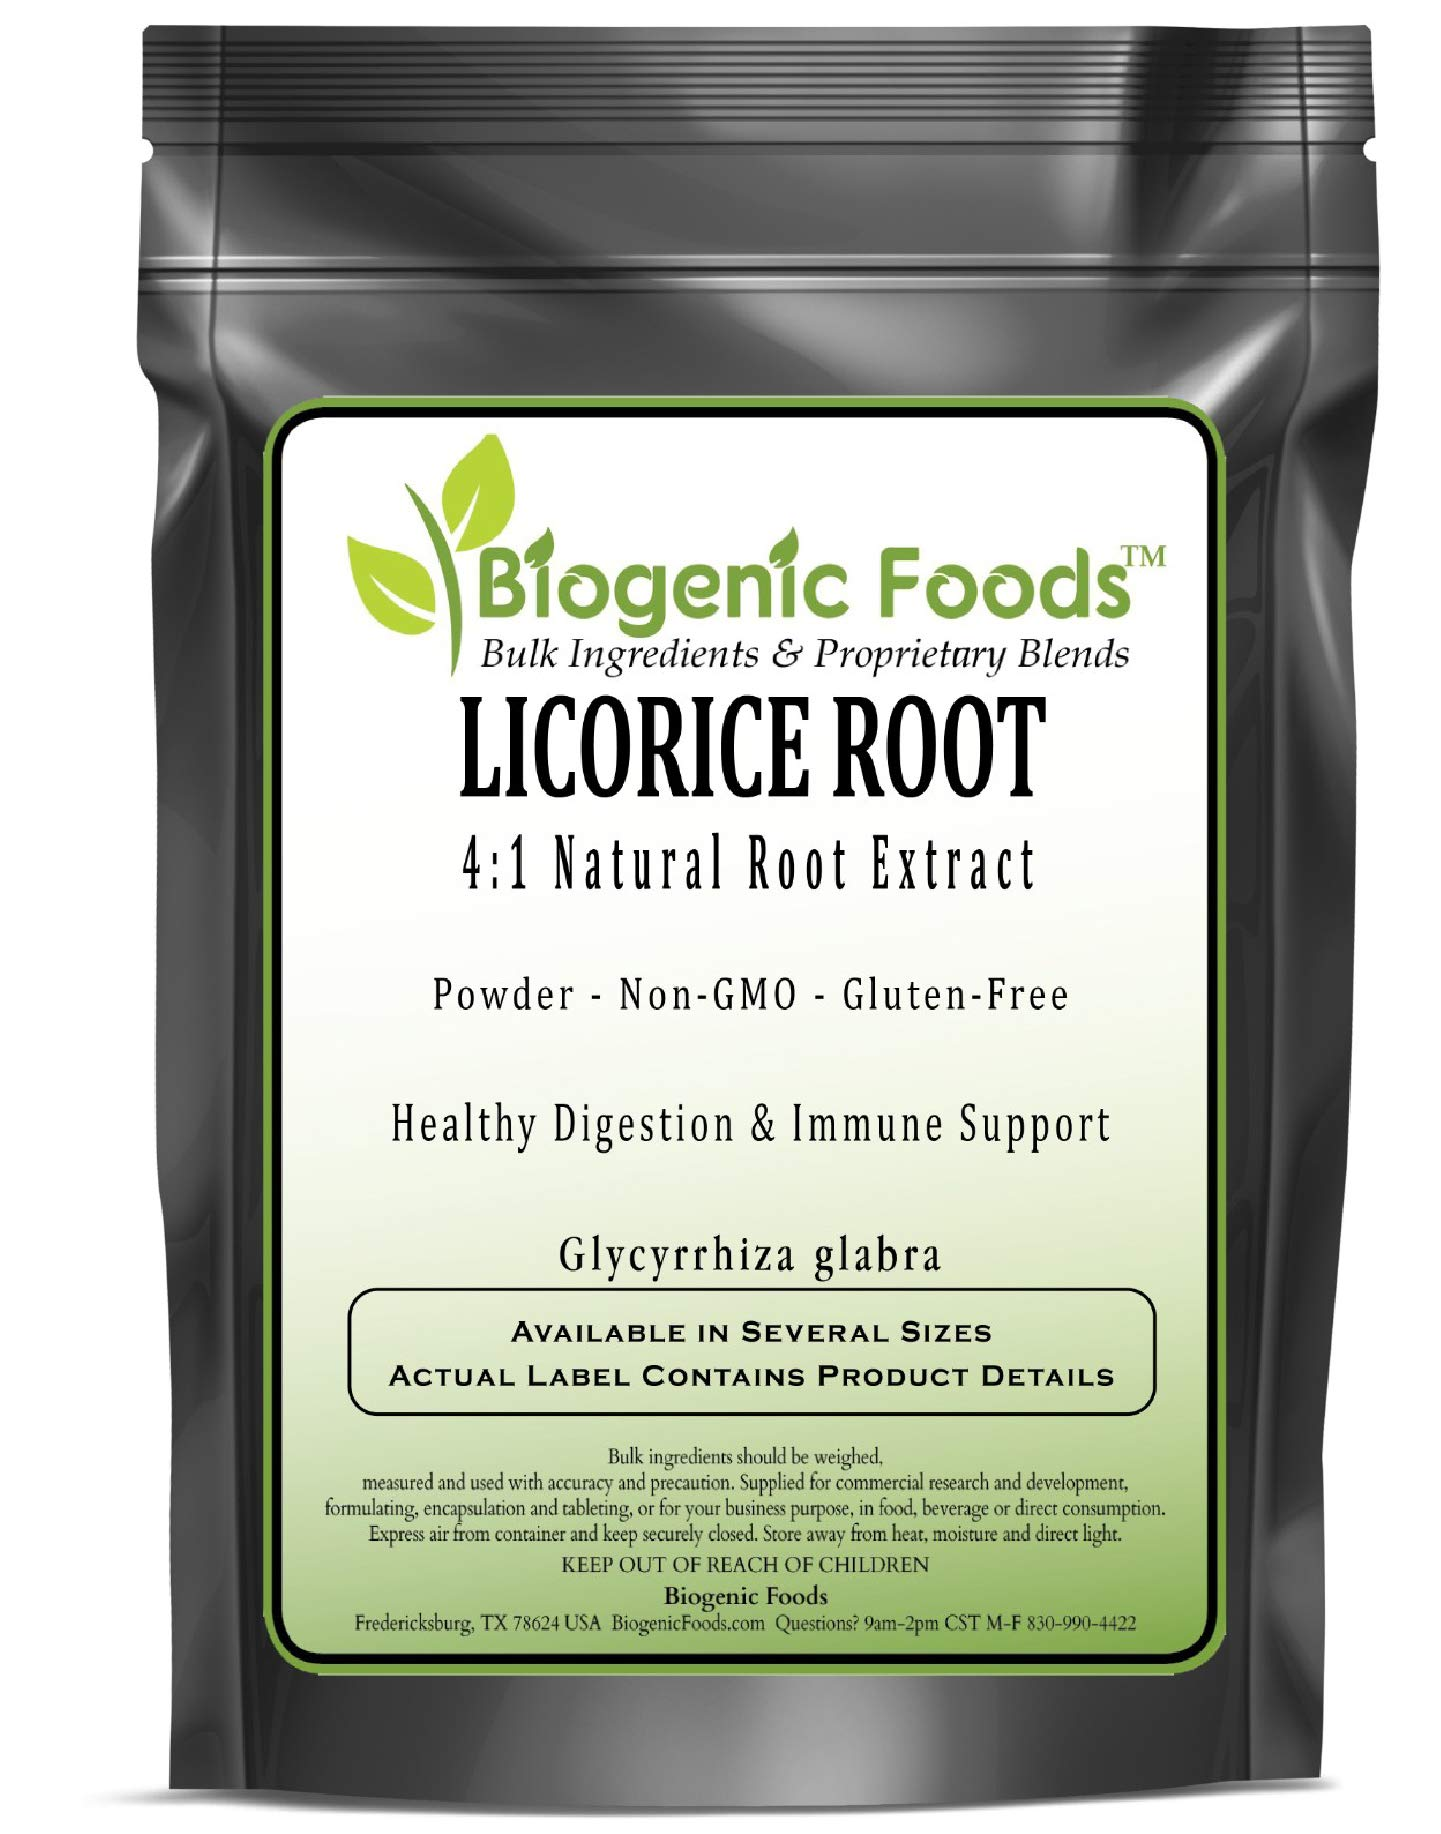 Licorice Root - 4:1 Natural Root Powder Extract (Glycyrrhiza glabra), 2 kg